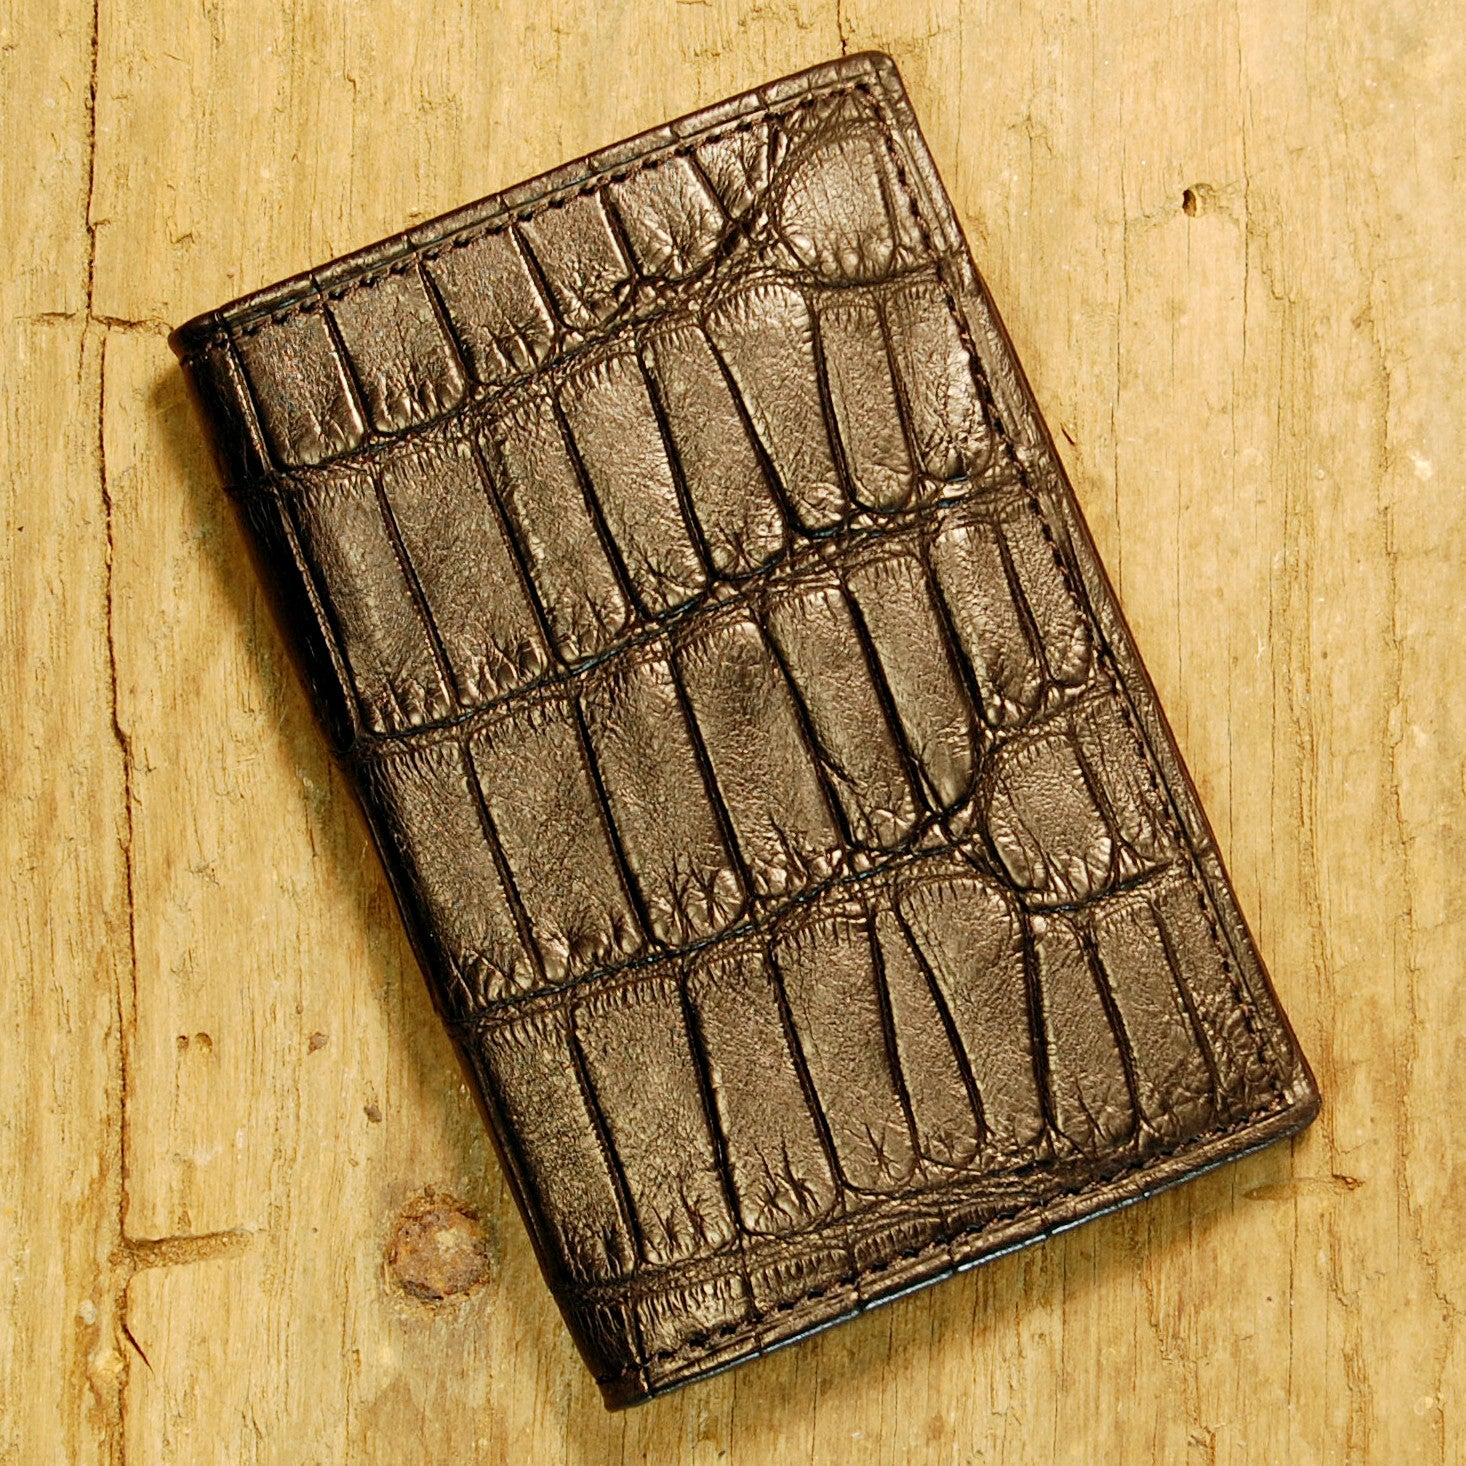 Dark's Leather Gusset Card Case in Alligator Black, Front